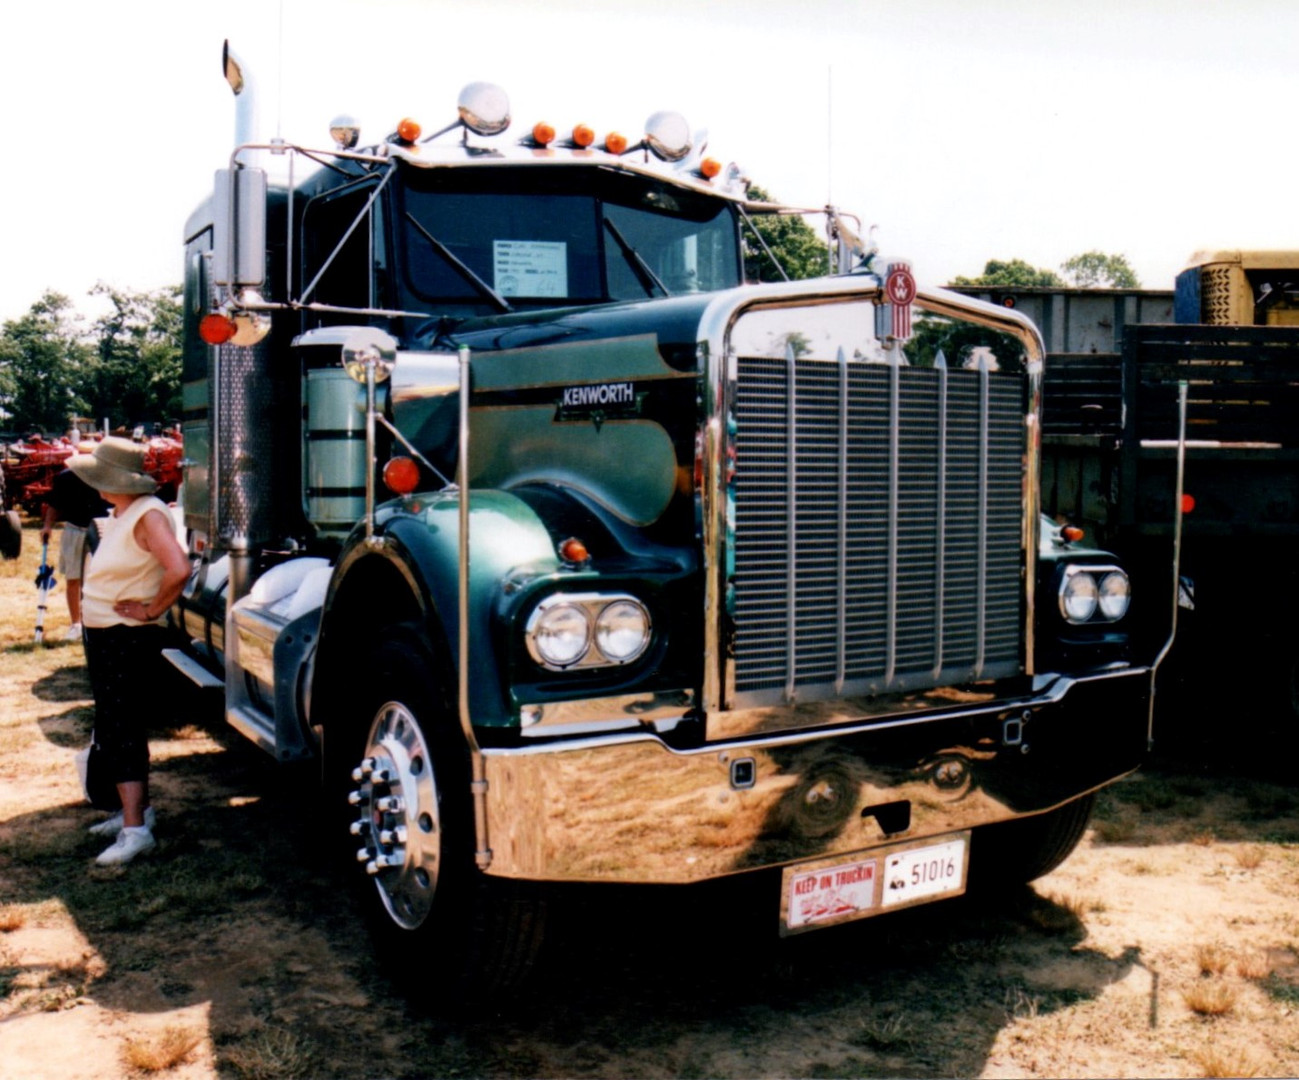 1977 Kenworth W-900A tractor from Connecticut